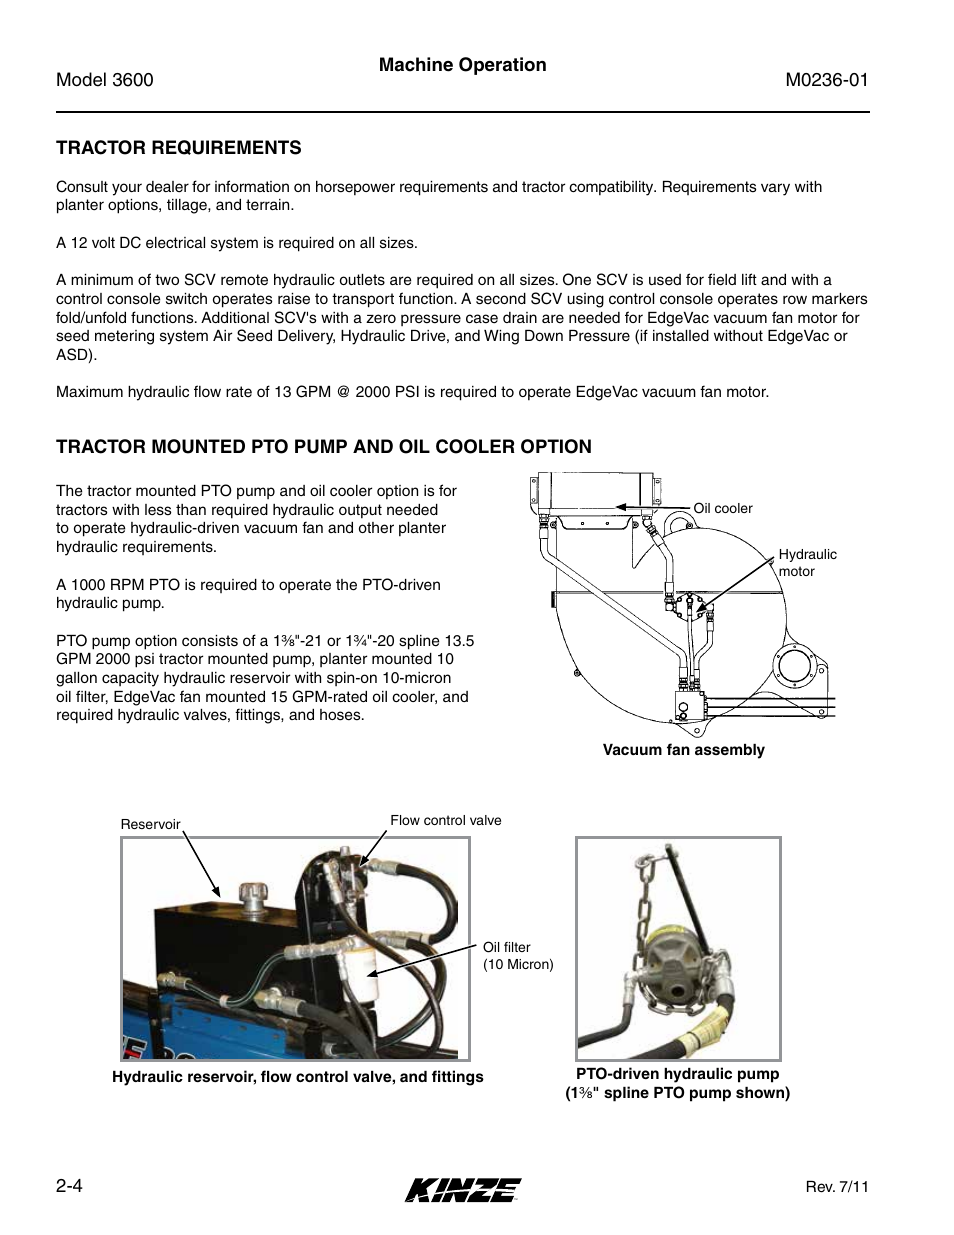 Tractor Requirements Tractor Mounted Pto Pump And Oil Cooler Option